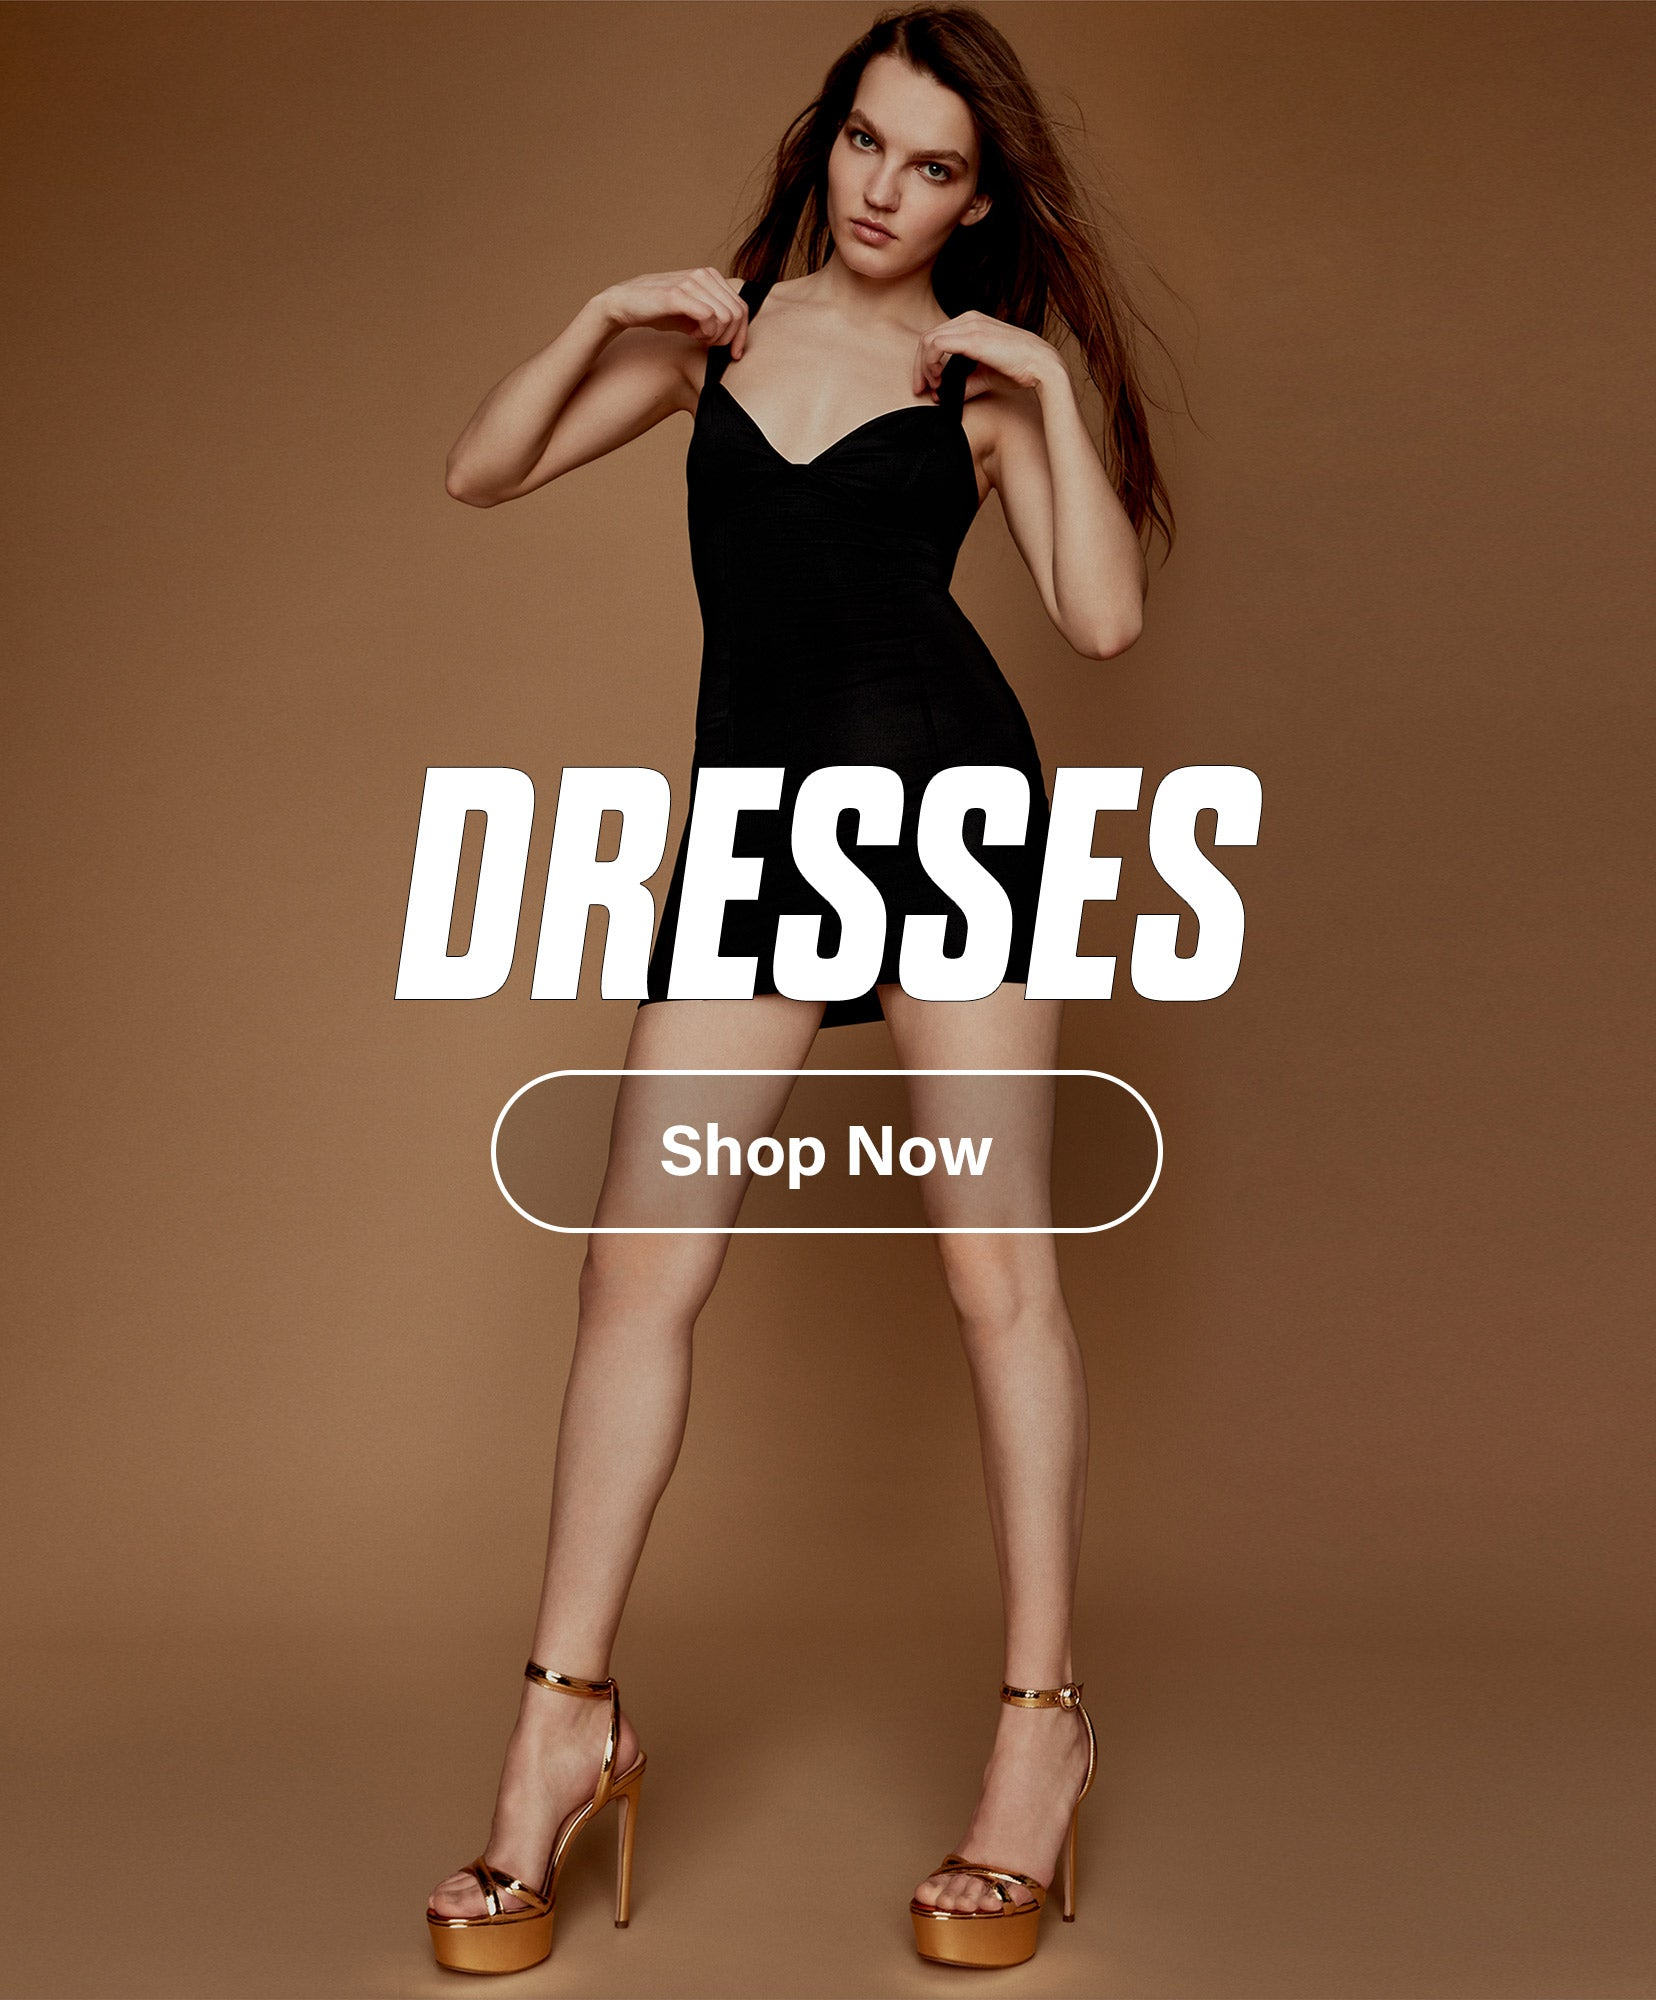 DRESSES SHOP NOW